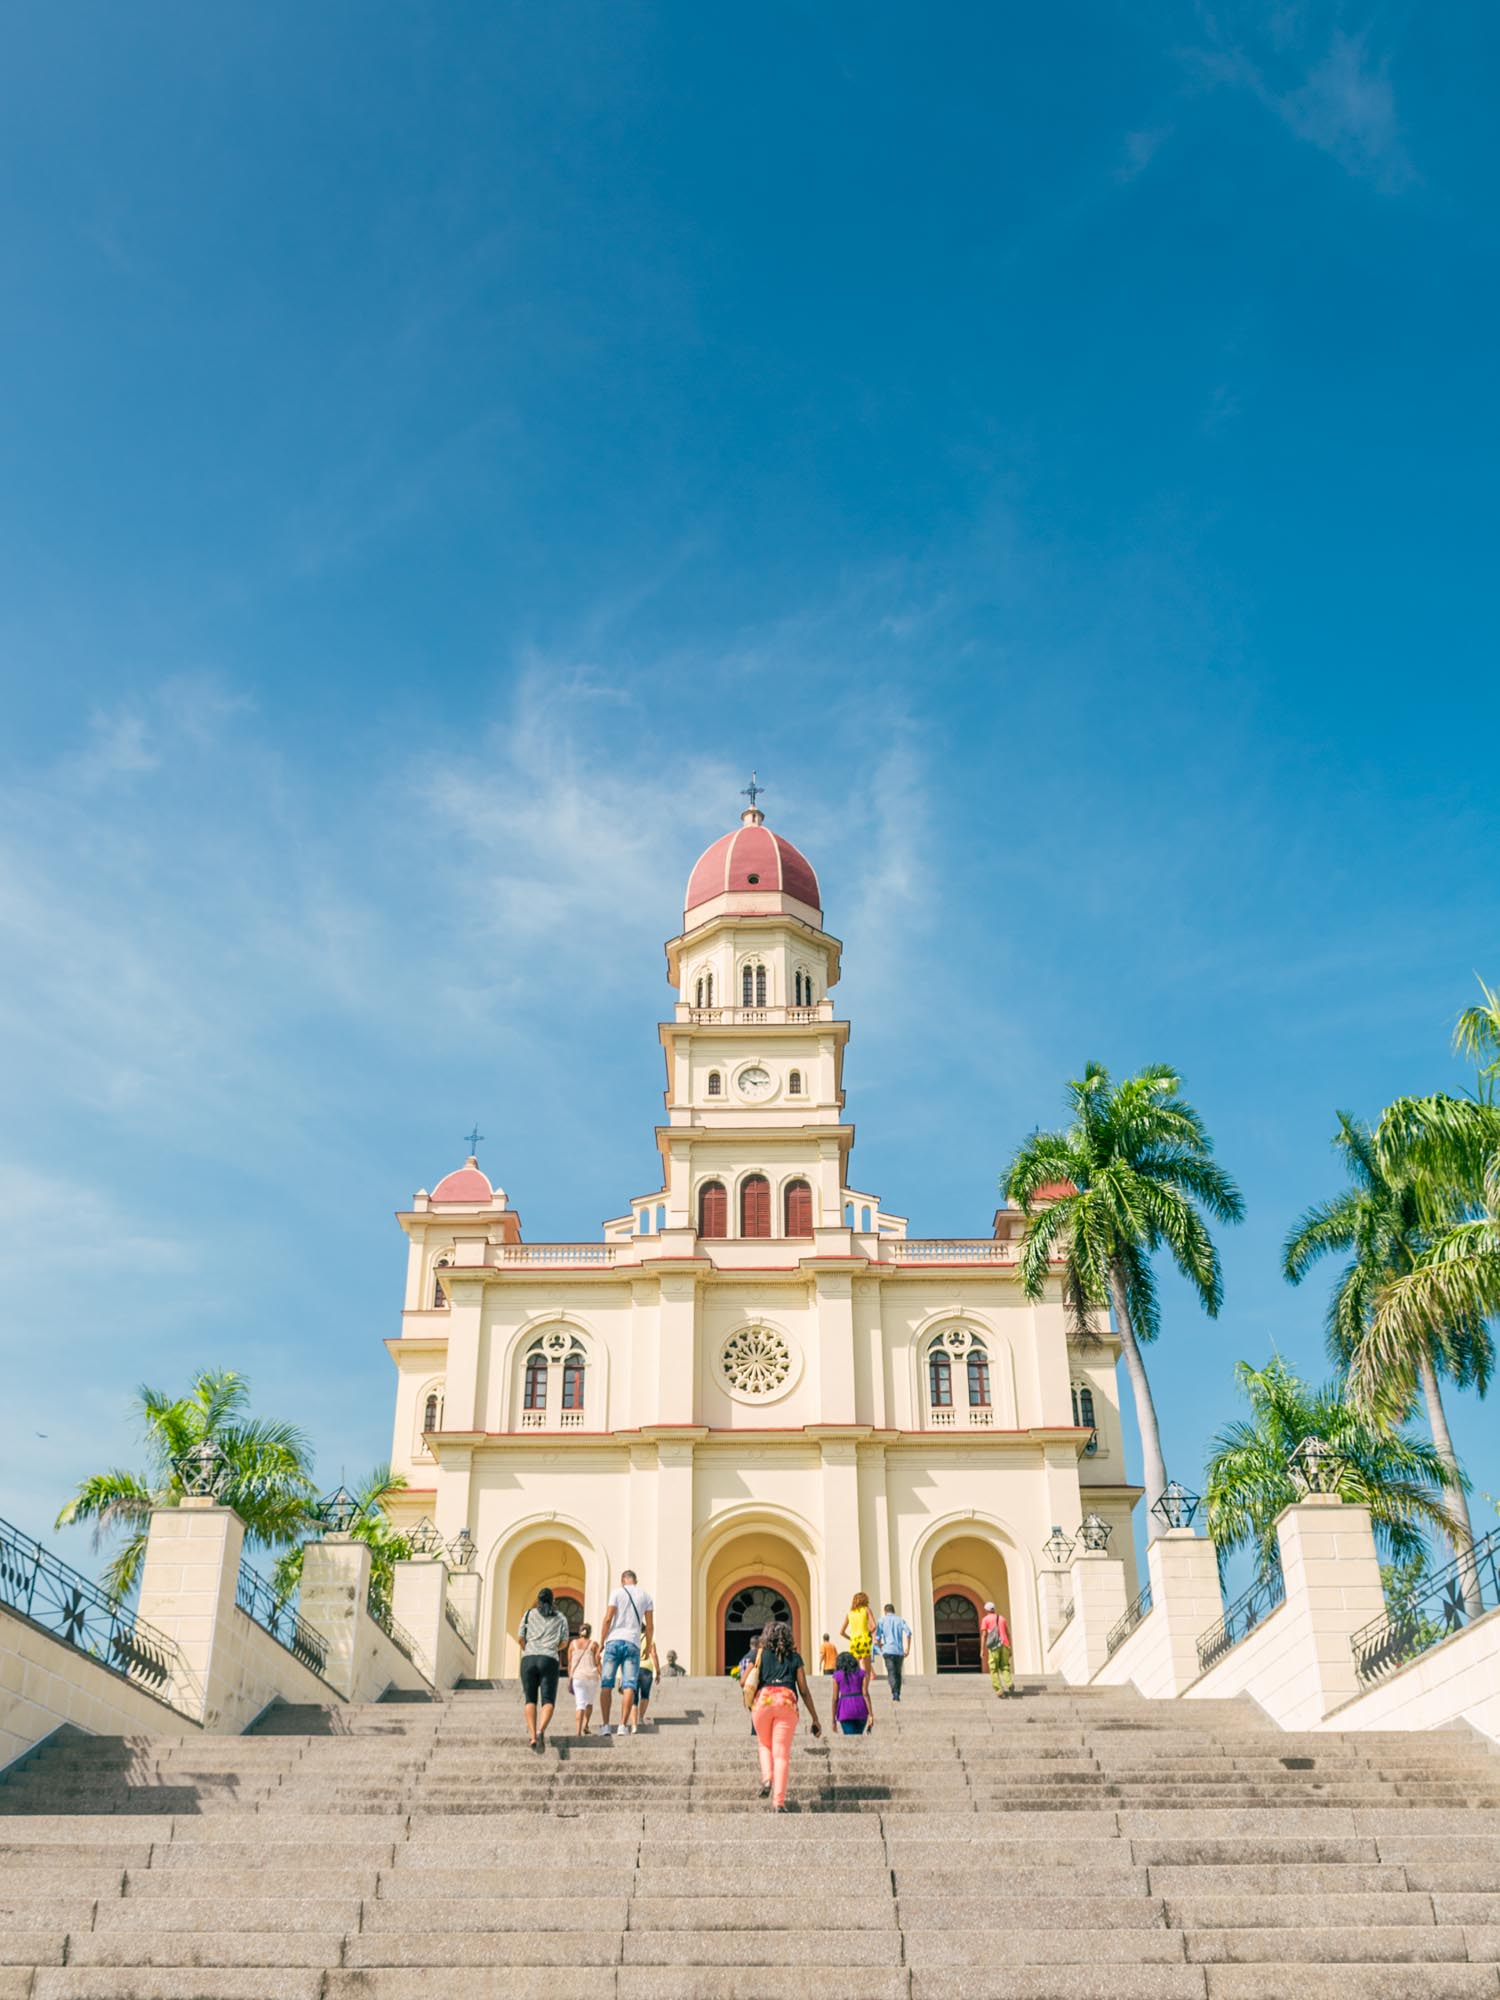 Basílica de la Vírgen del Cobre is one of the tourist spots for Hemingway in Cuba.